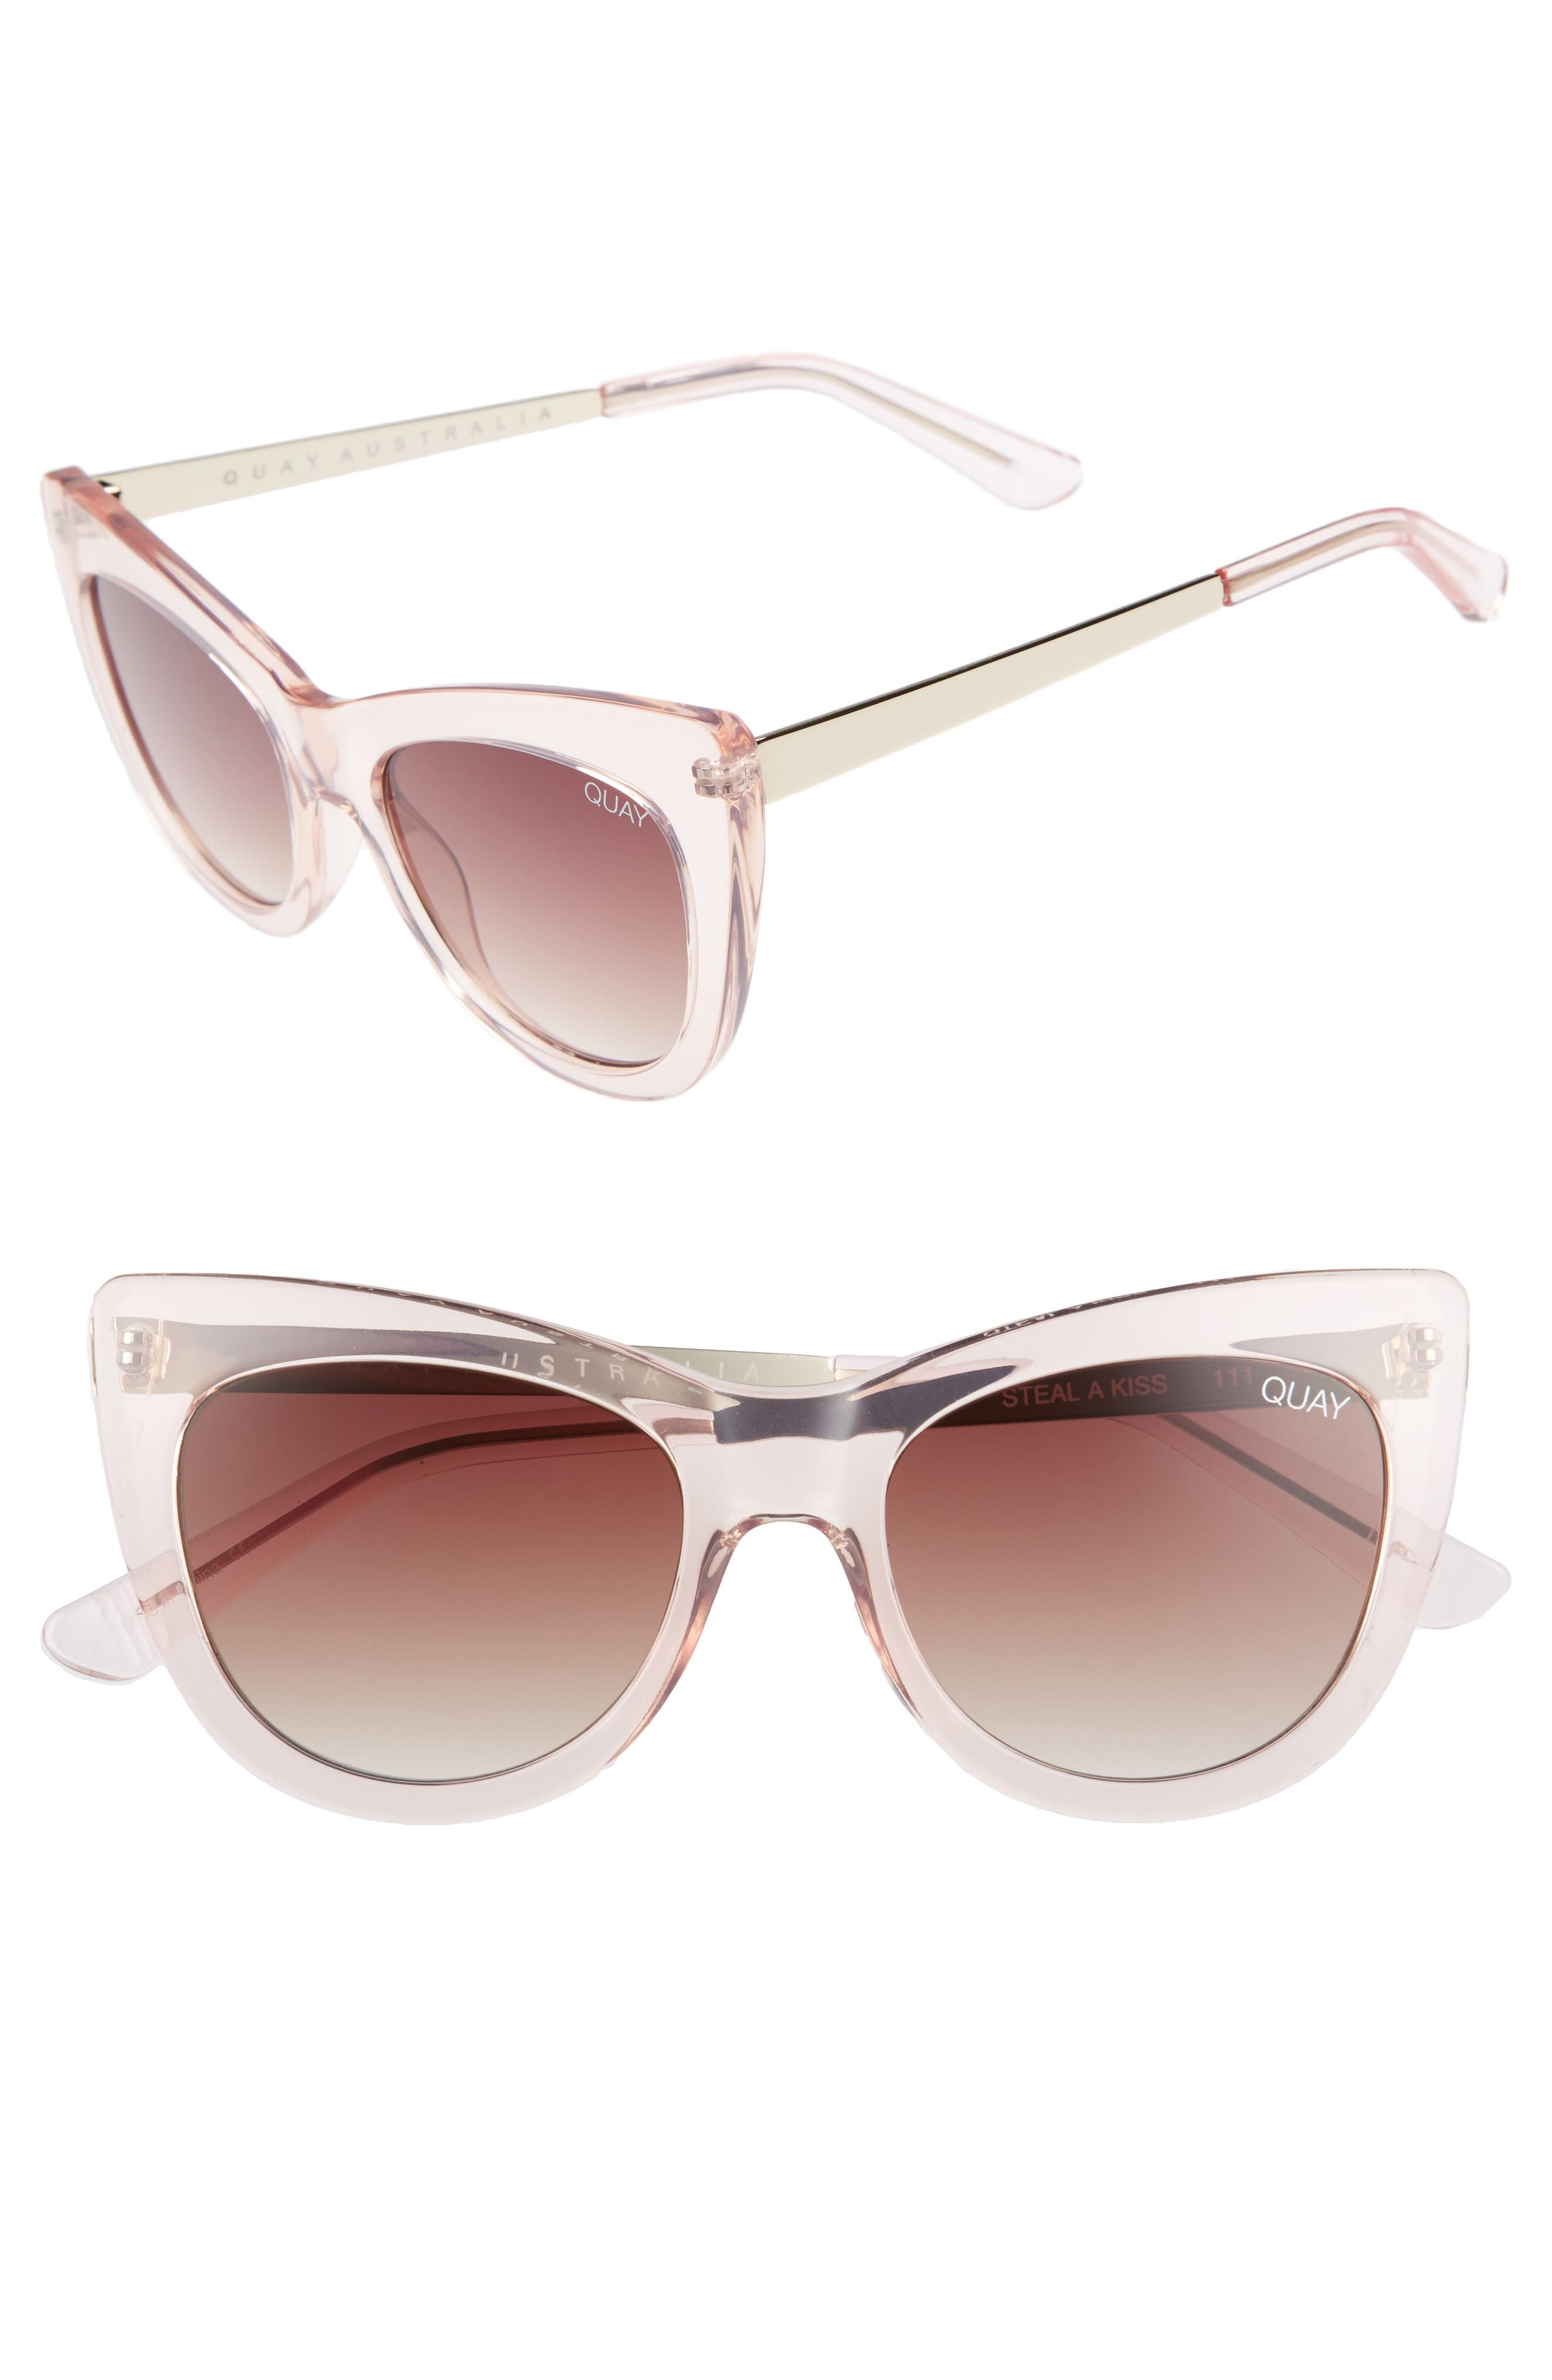 53mm Steal a Kiss Cat-eye Sunglasses,                         Main,                         color, Pink/ Brown